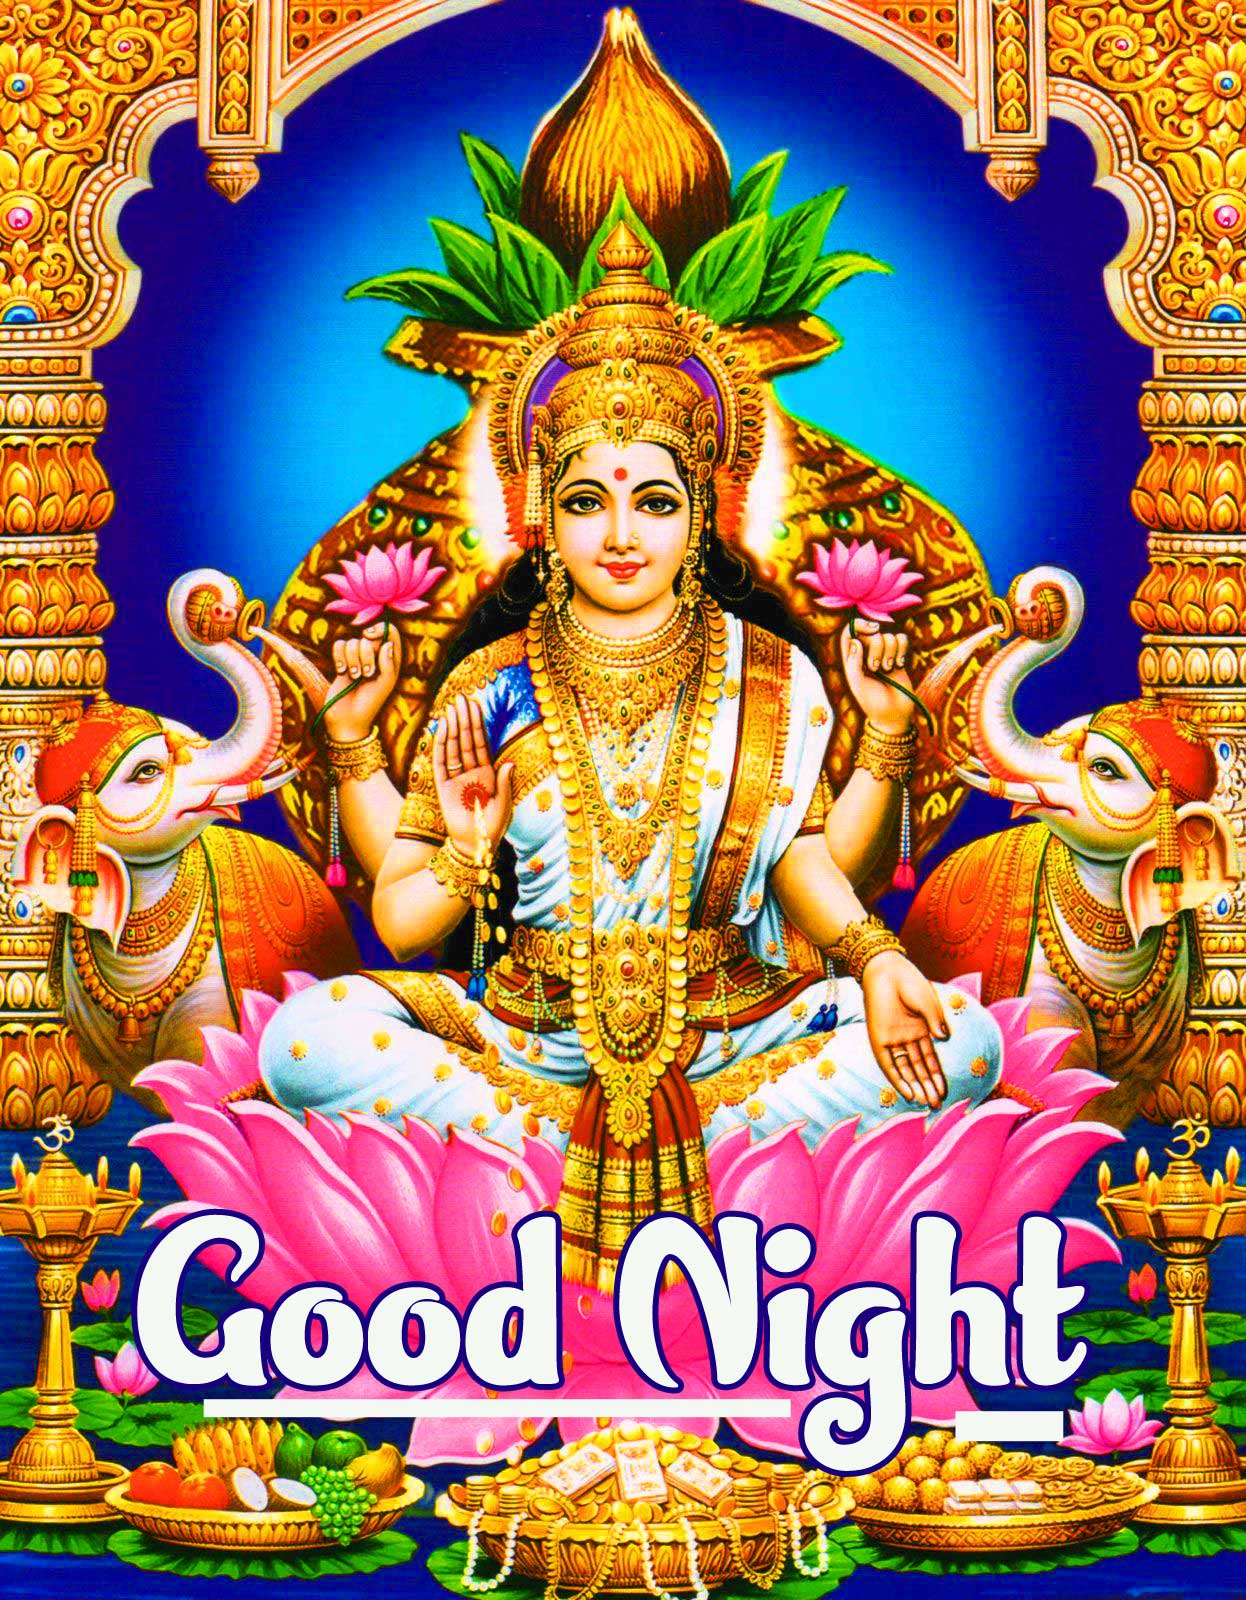 God Good Night Wishes Images 12